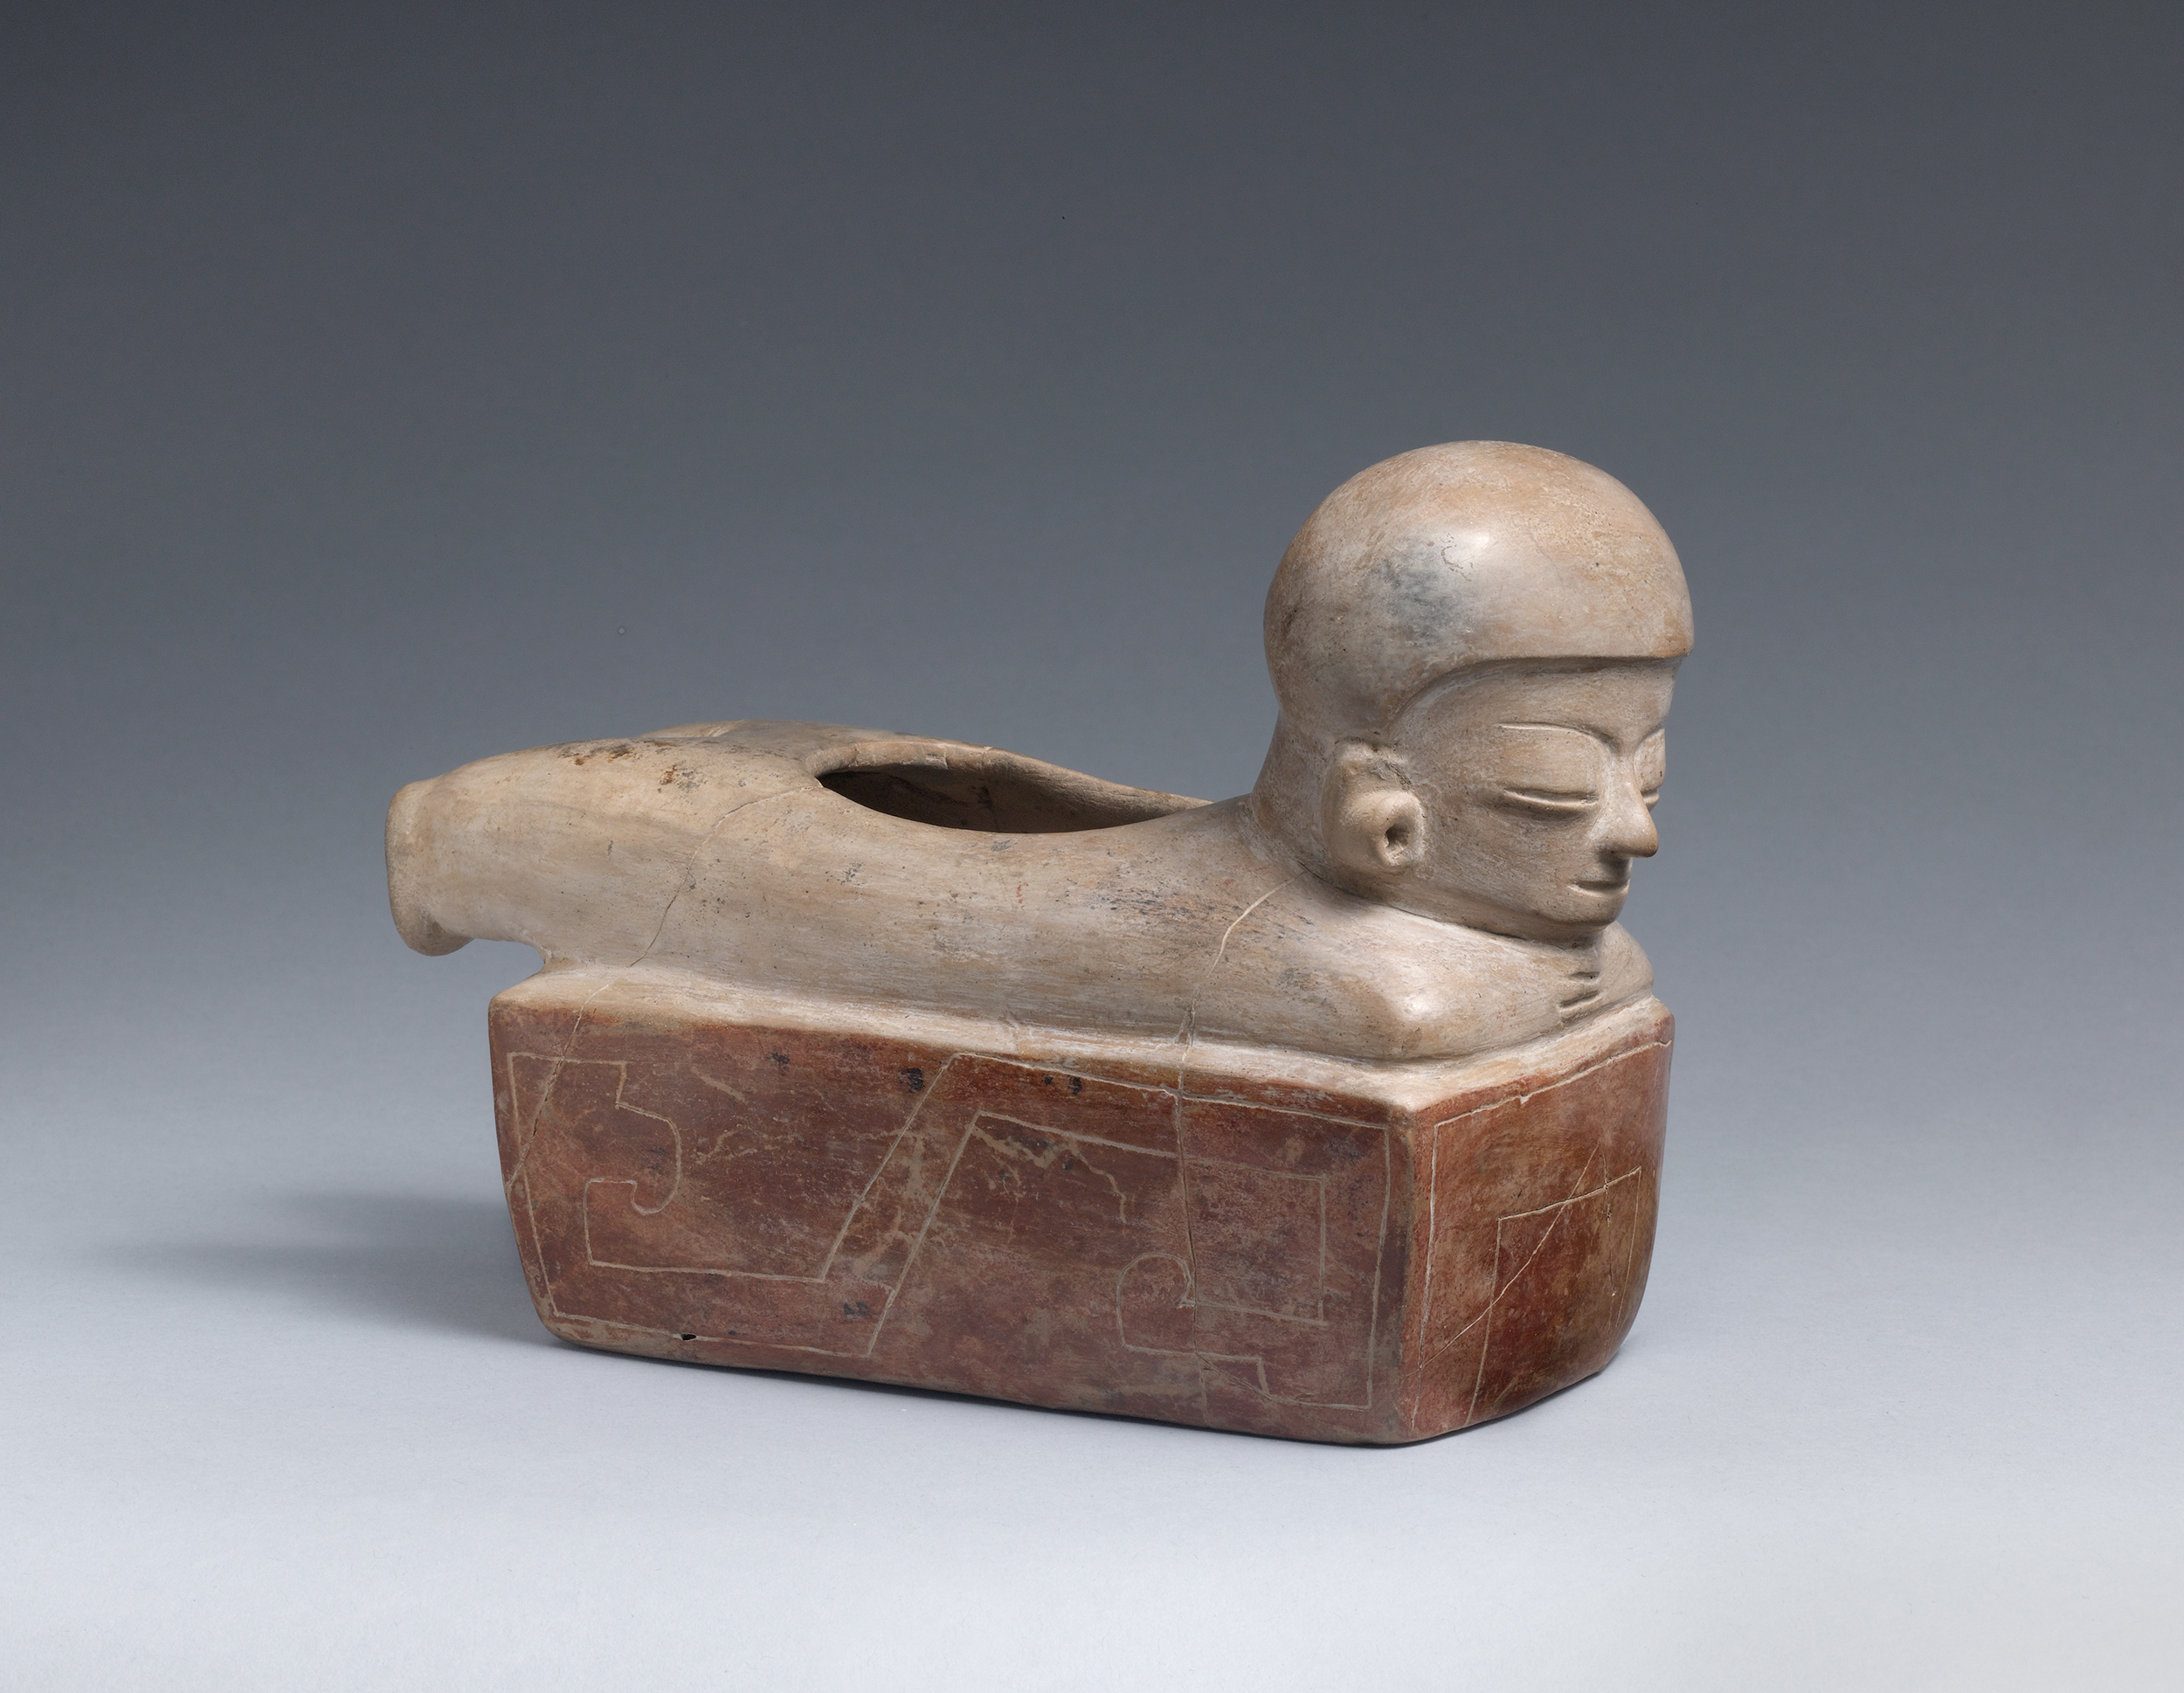 Ceramic vessel of a human figure with a helmet and earplugs, laying on their stomach.